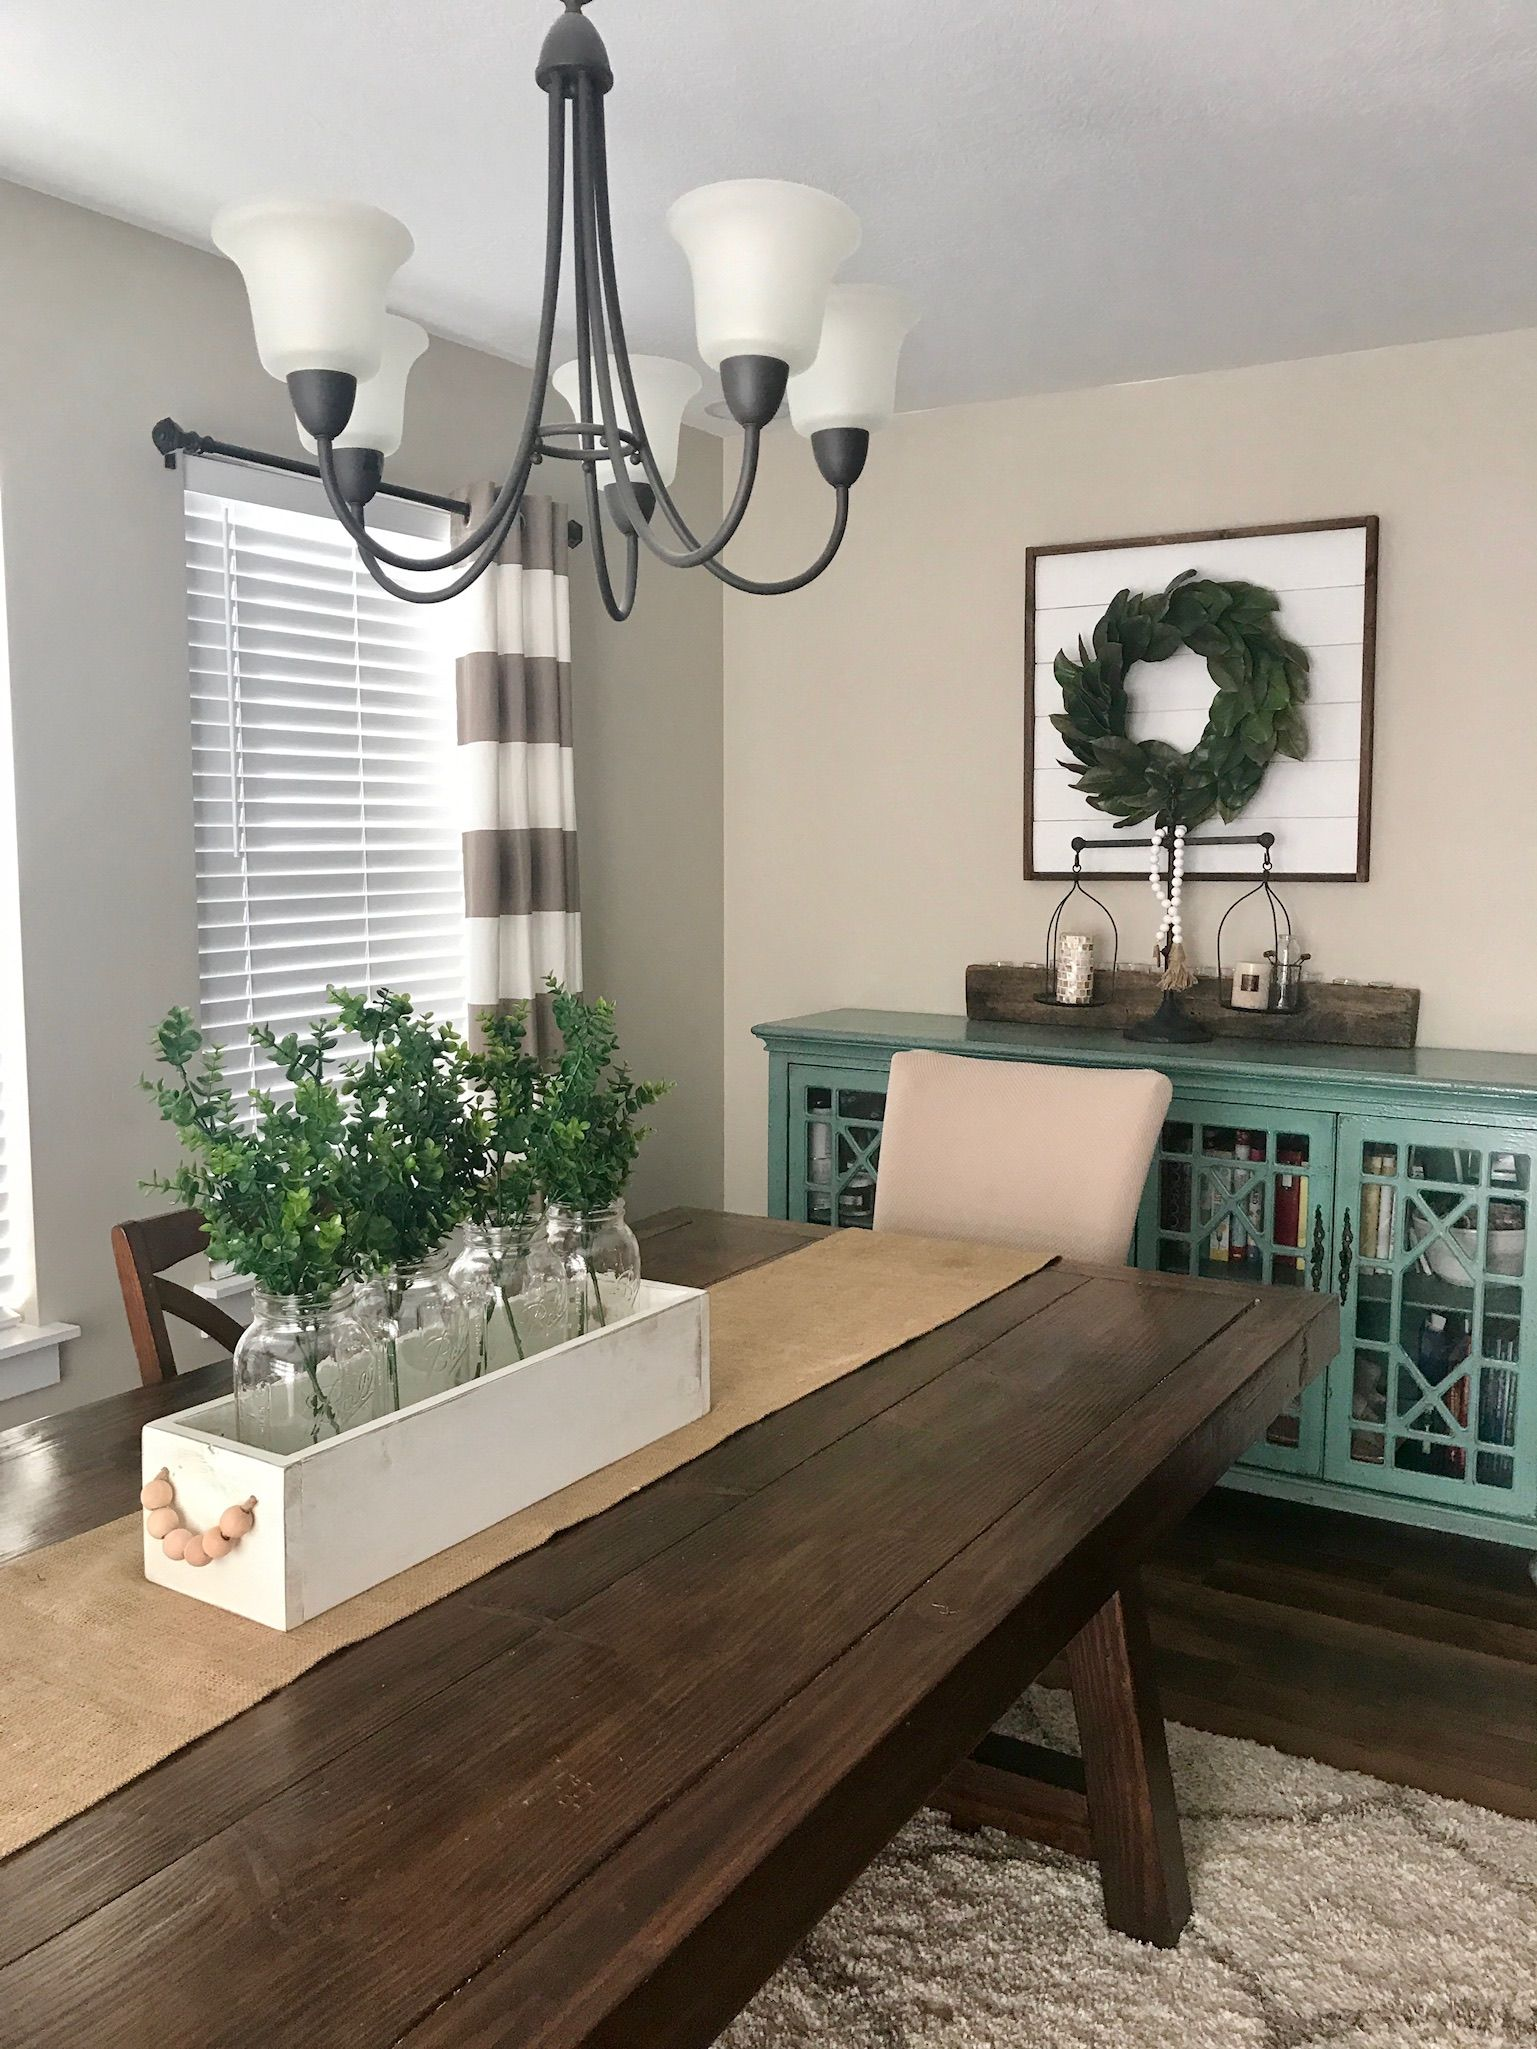 Beautiful Wood Caddy Centerpiece Farmhouse Style Kitchen With A